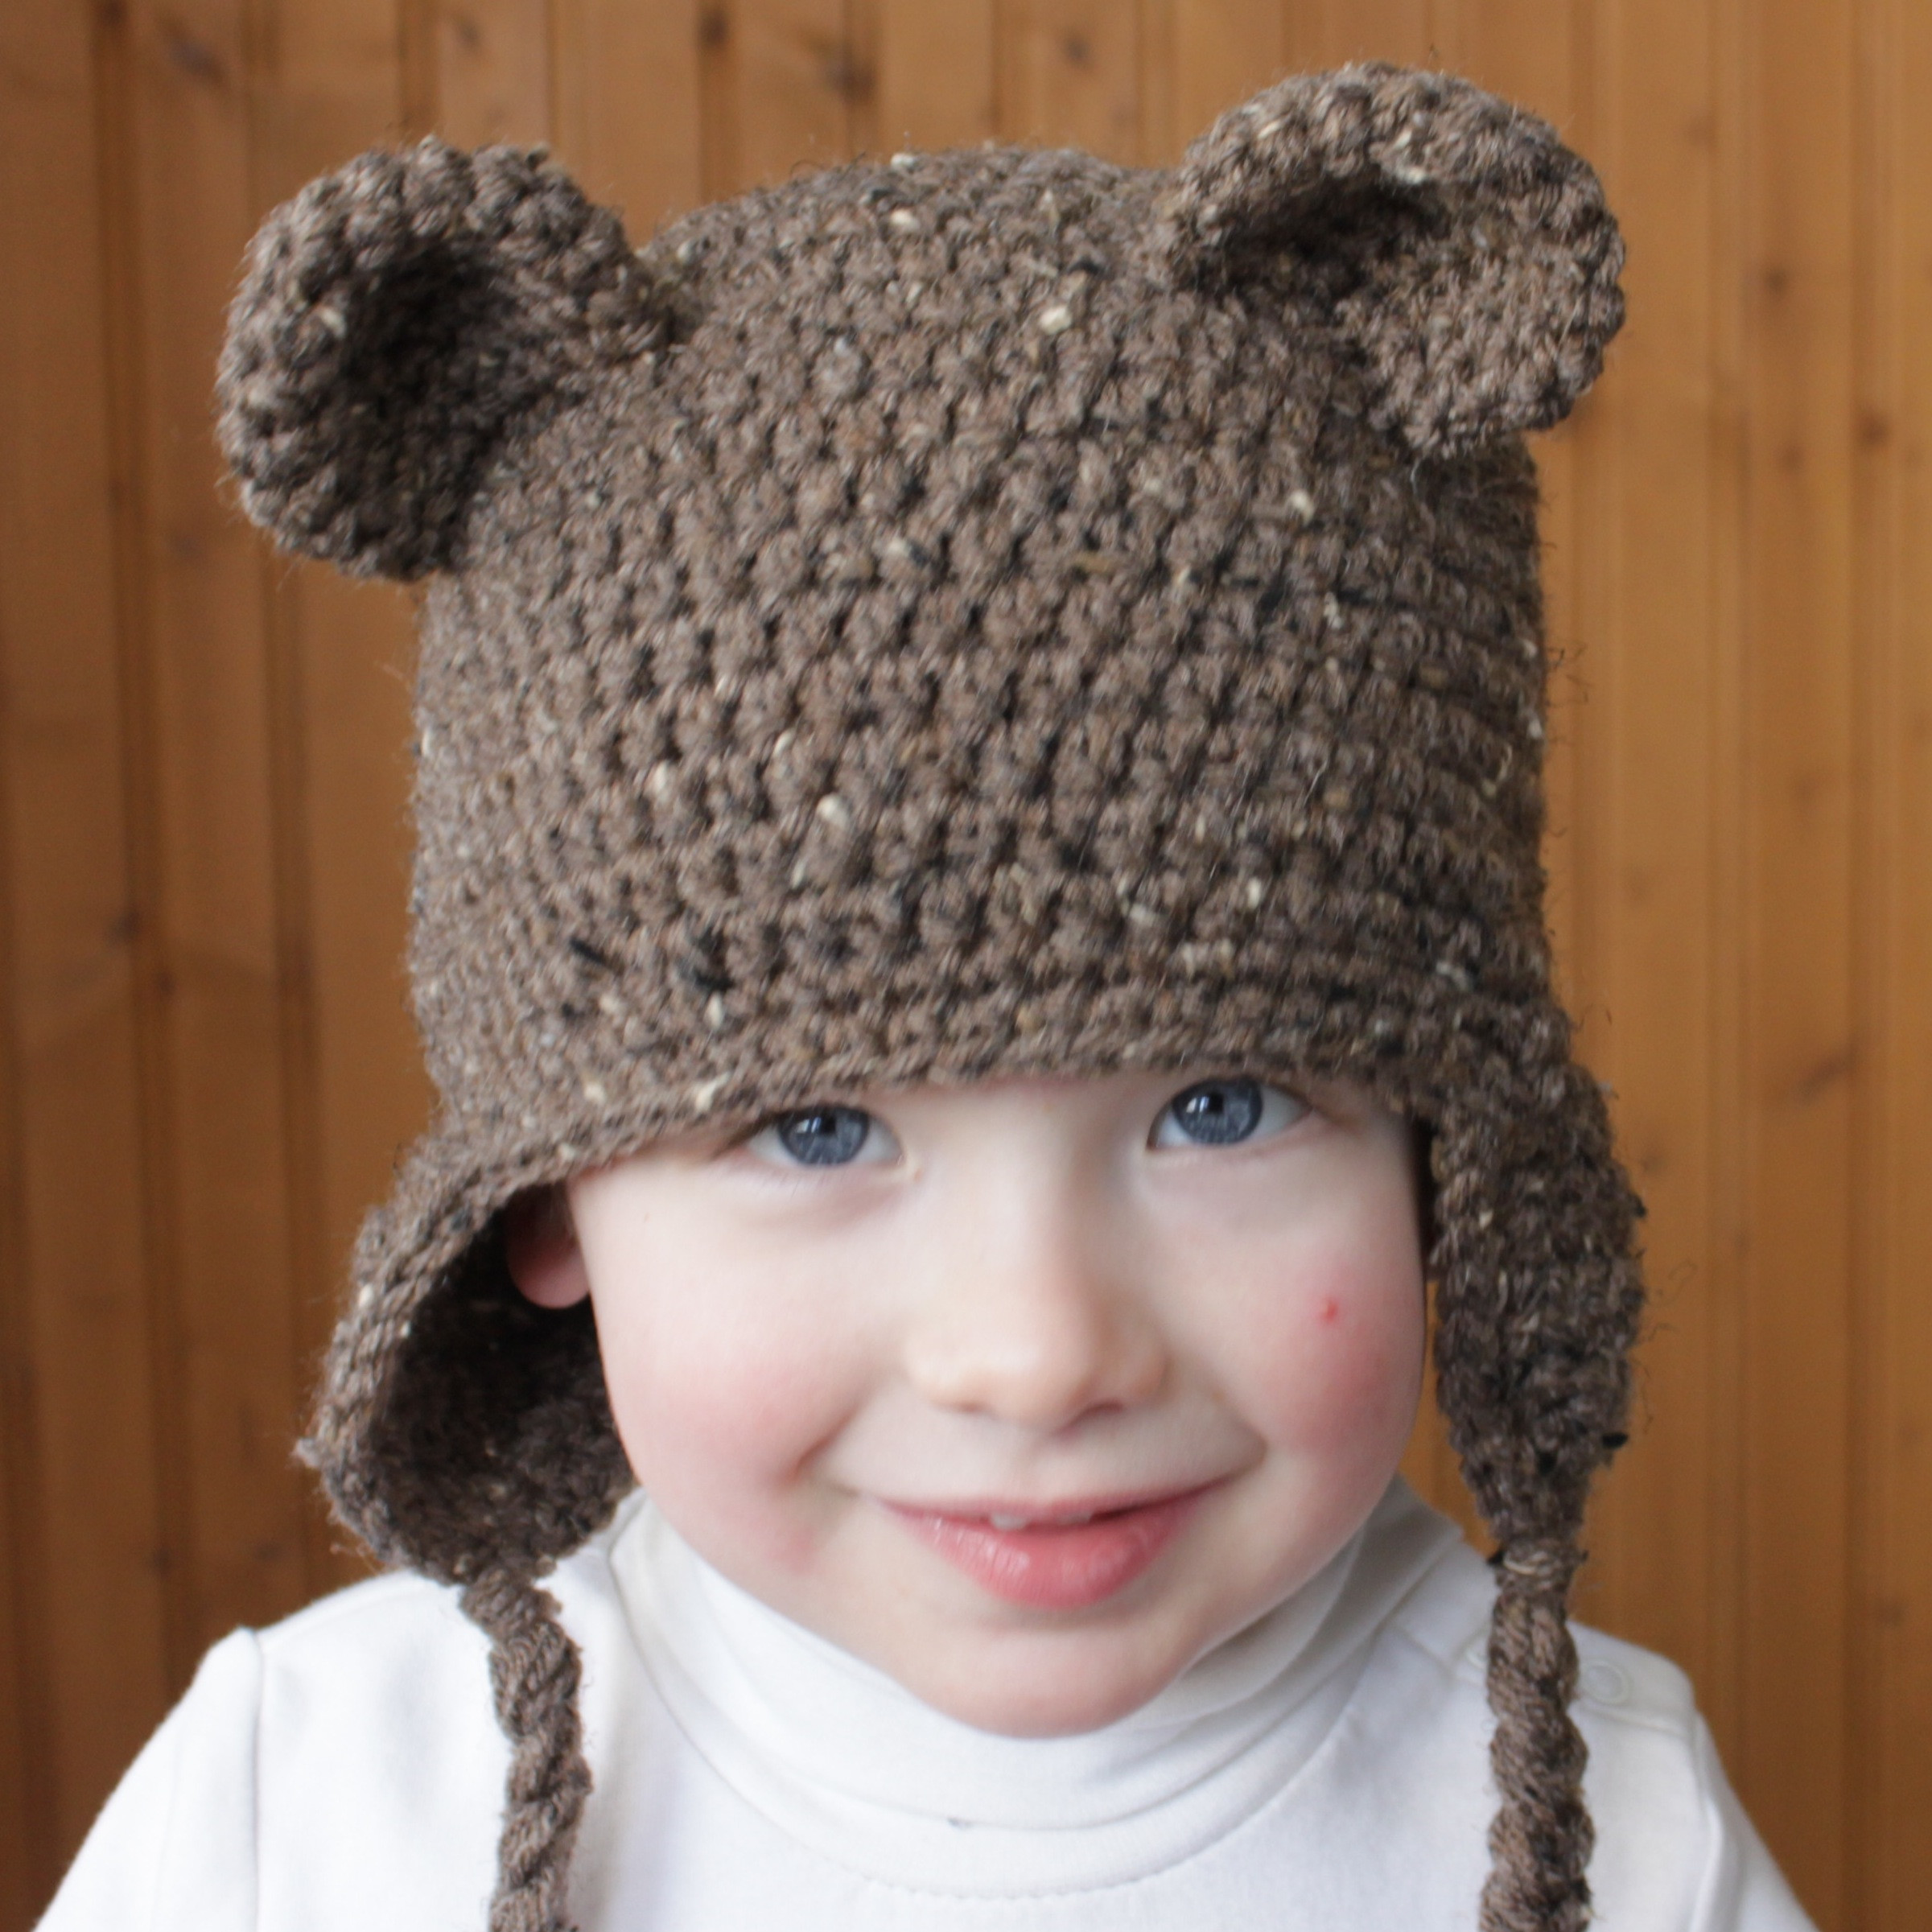 Best Of 34 Crochet Teddy Bear Patterns Free Crochet Patterns for toddlers Of Brilliant 47 Photos Free Crochet Patterns for toddlers